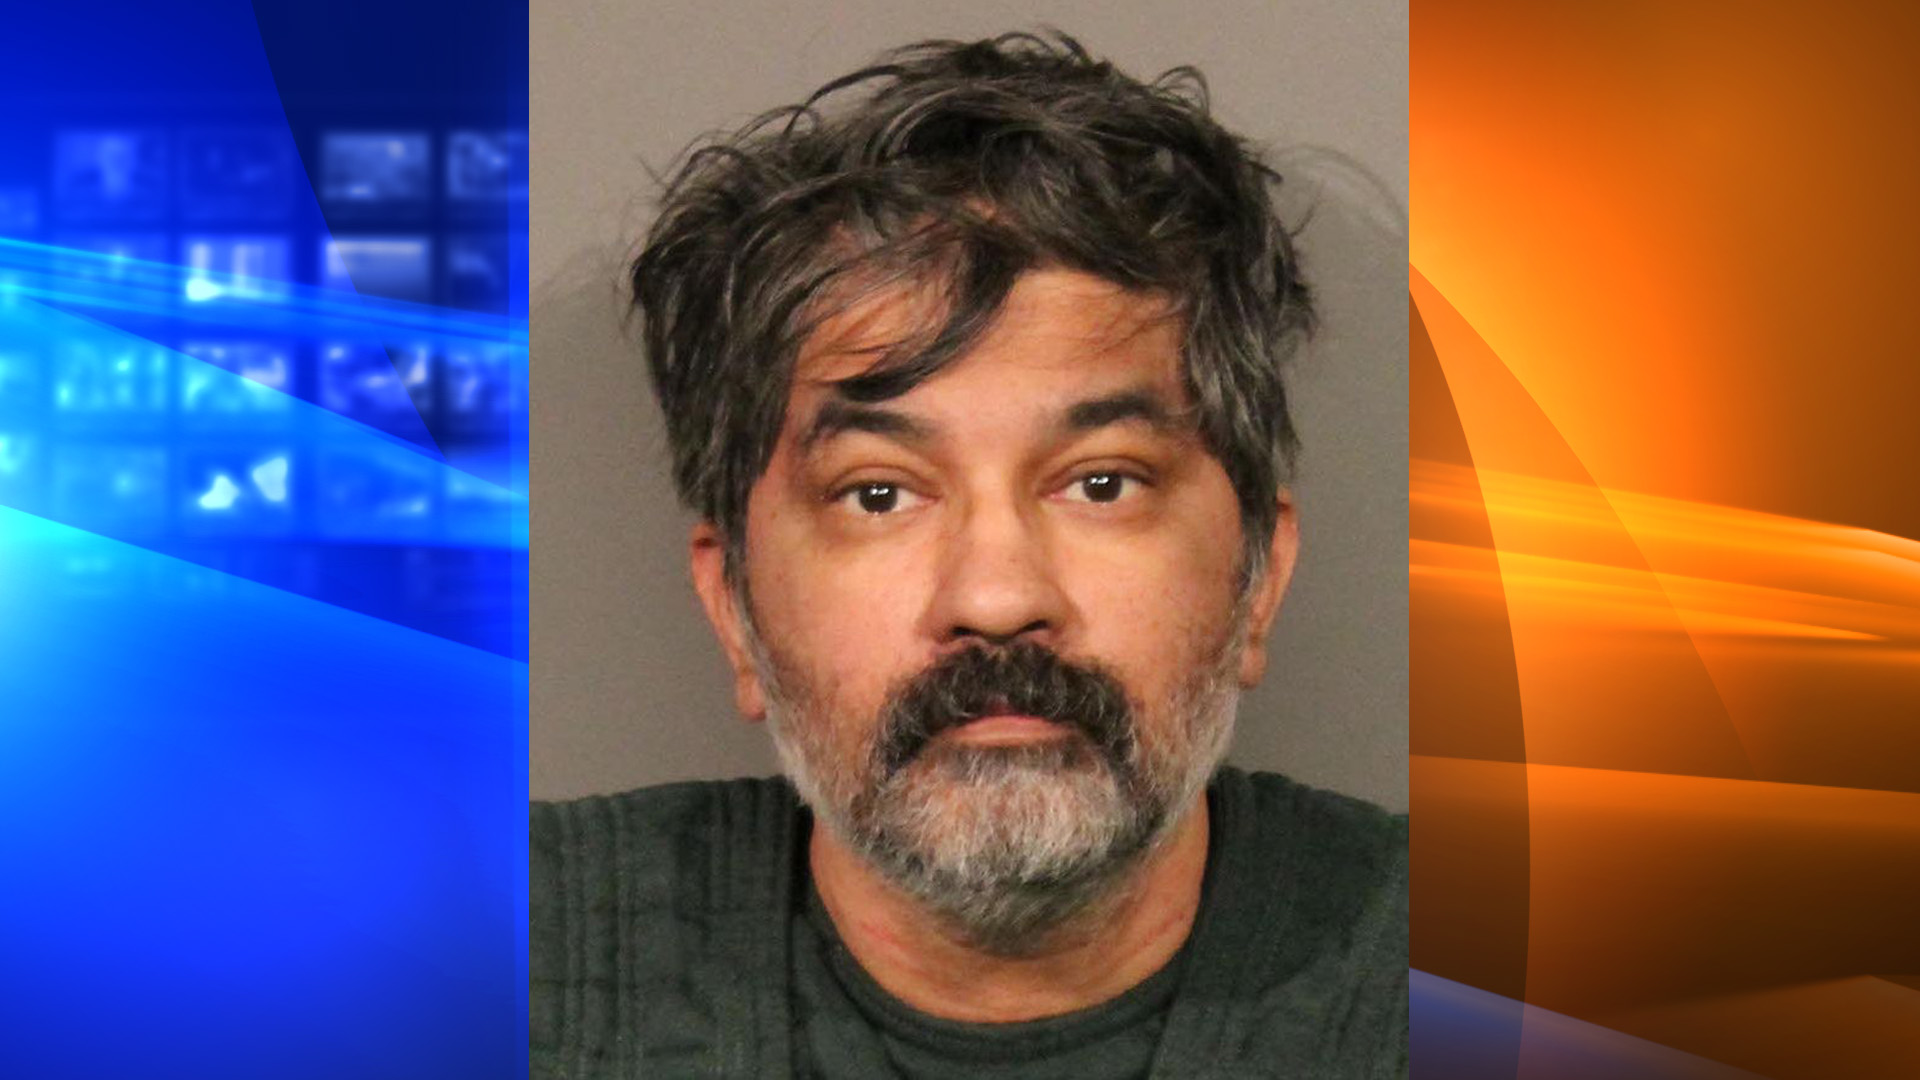 A booking photo of Shankar Nagappa Hangud released on Oct. 15, 2019, by the Roseville Police Department.